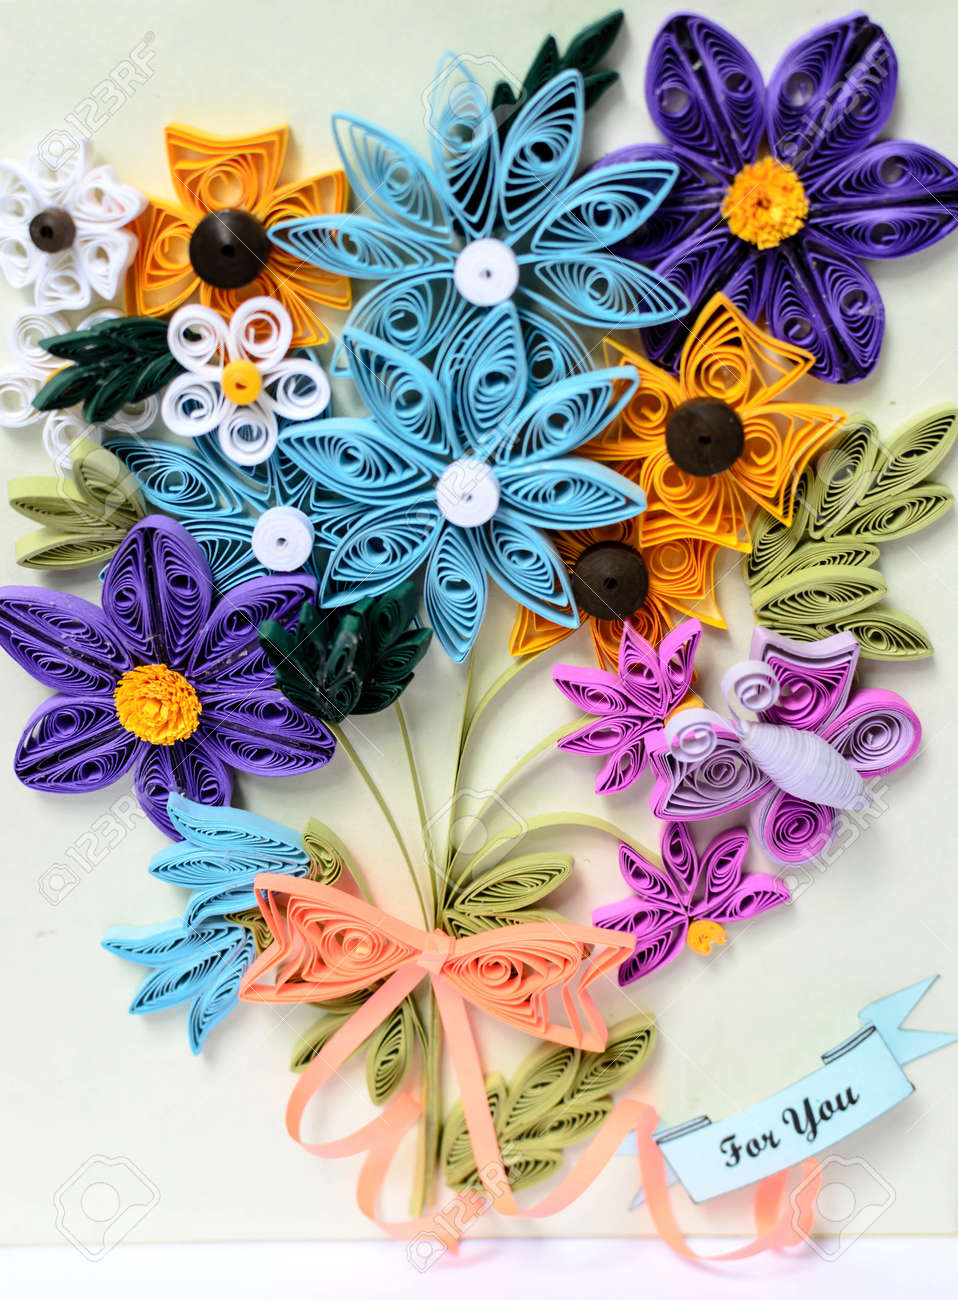 A Flowers Made From Paper Stripes Its Name Quilling Paper Stock